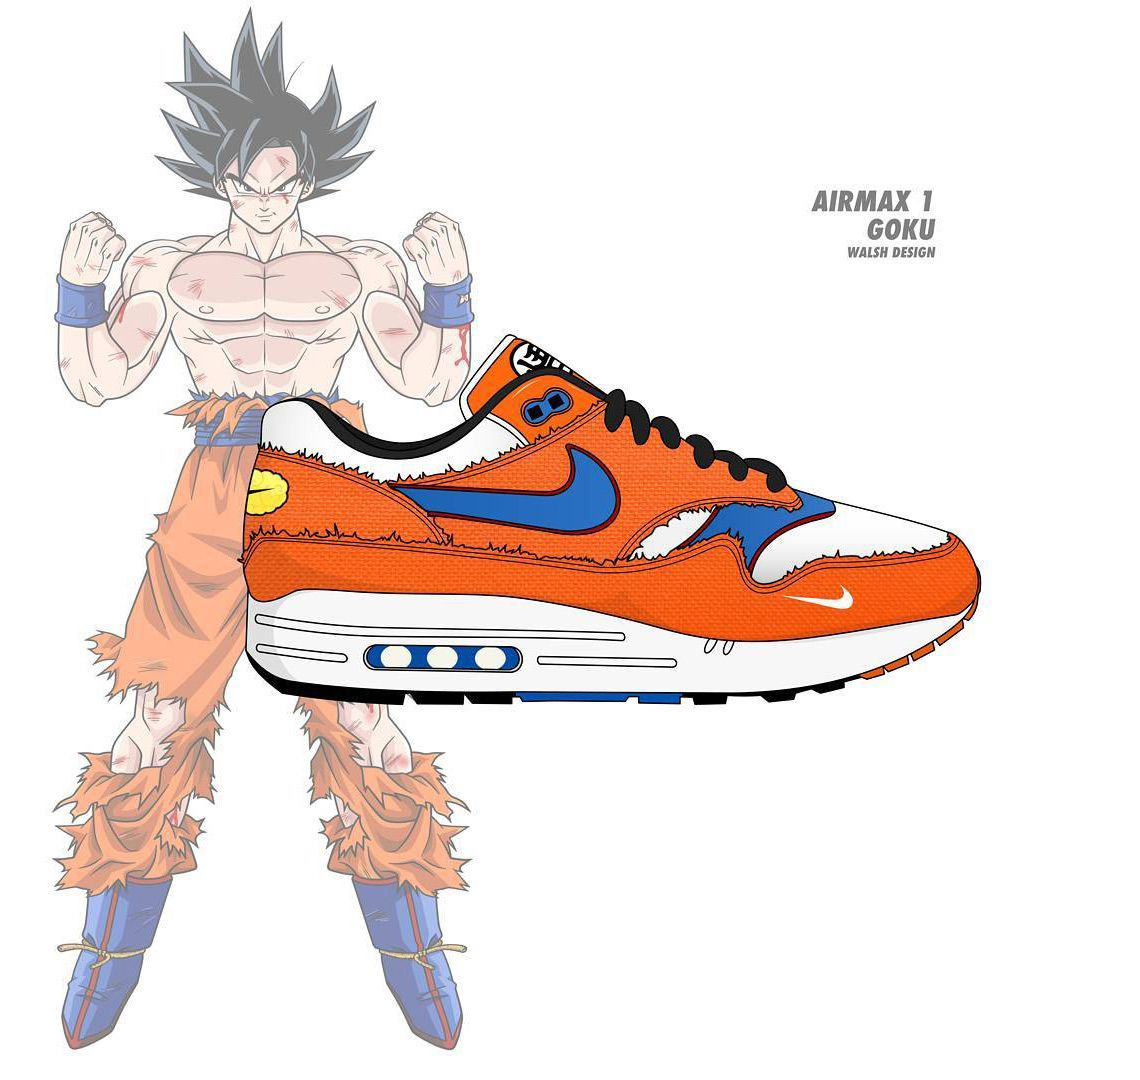 33776d47c This is what a NIKE x Dragonball Z collaboration would look like...  http   snkrne.ws 2EjNi8Y pic.twitter.com QBYTZZFwrs